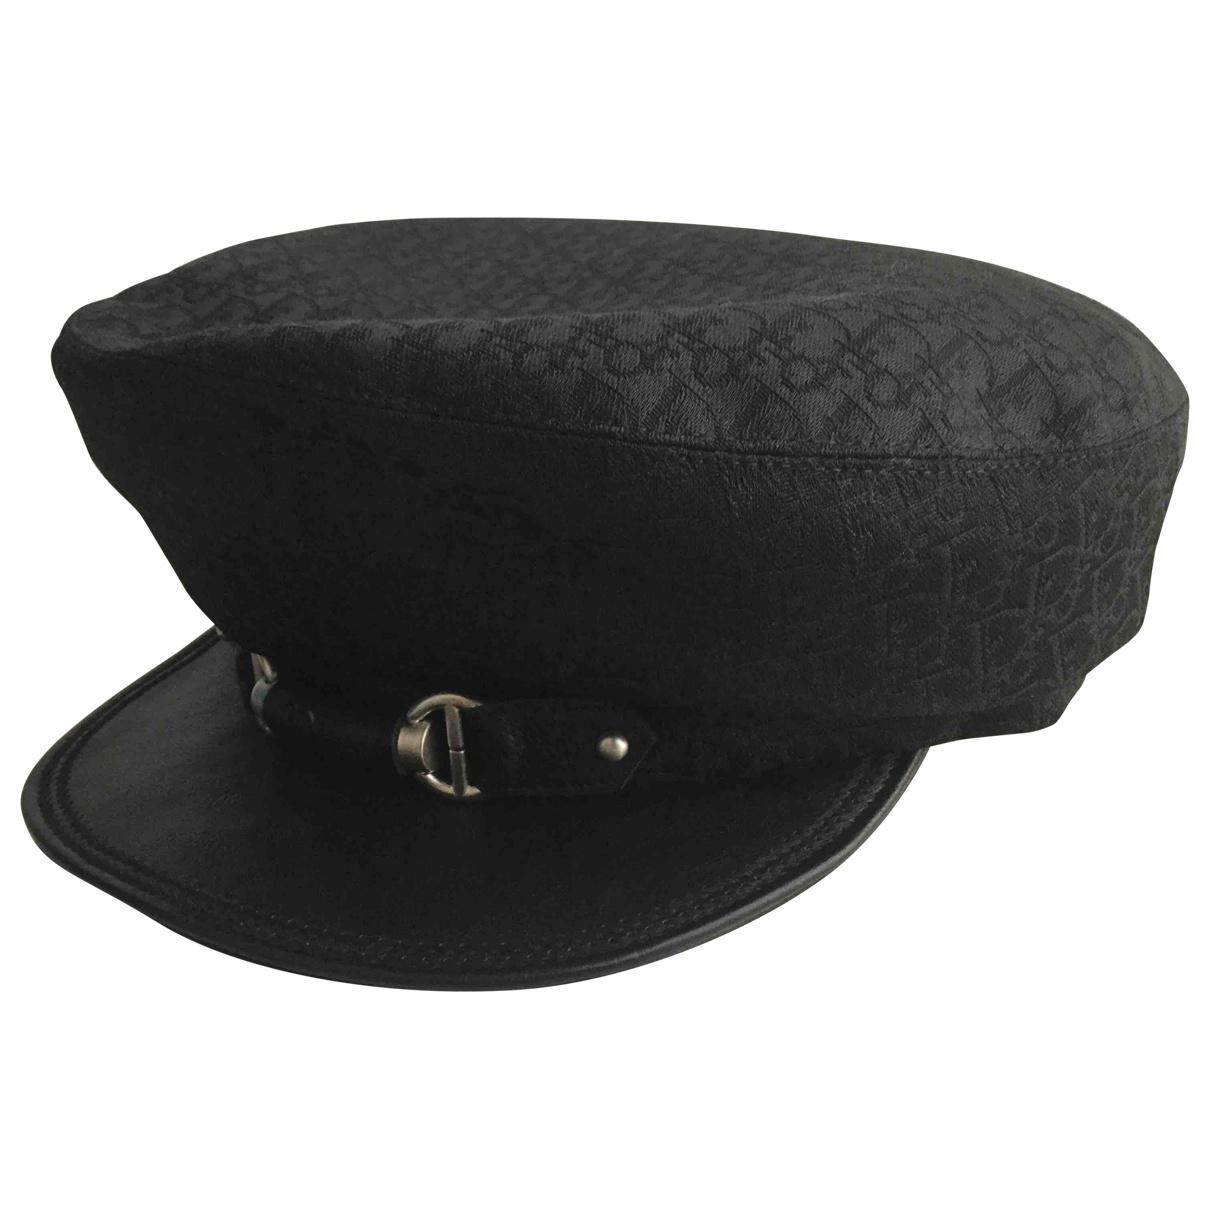 be95a919011 Dior Hat in Black - Lyst